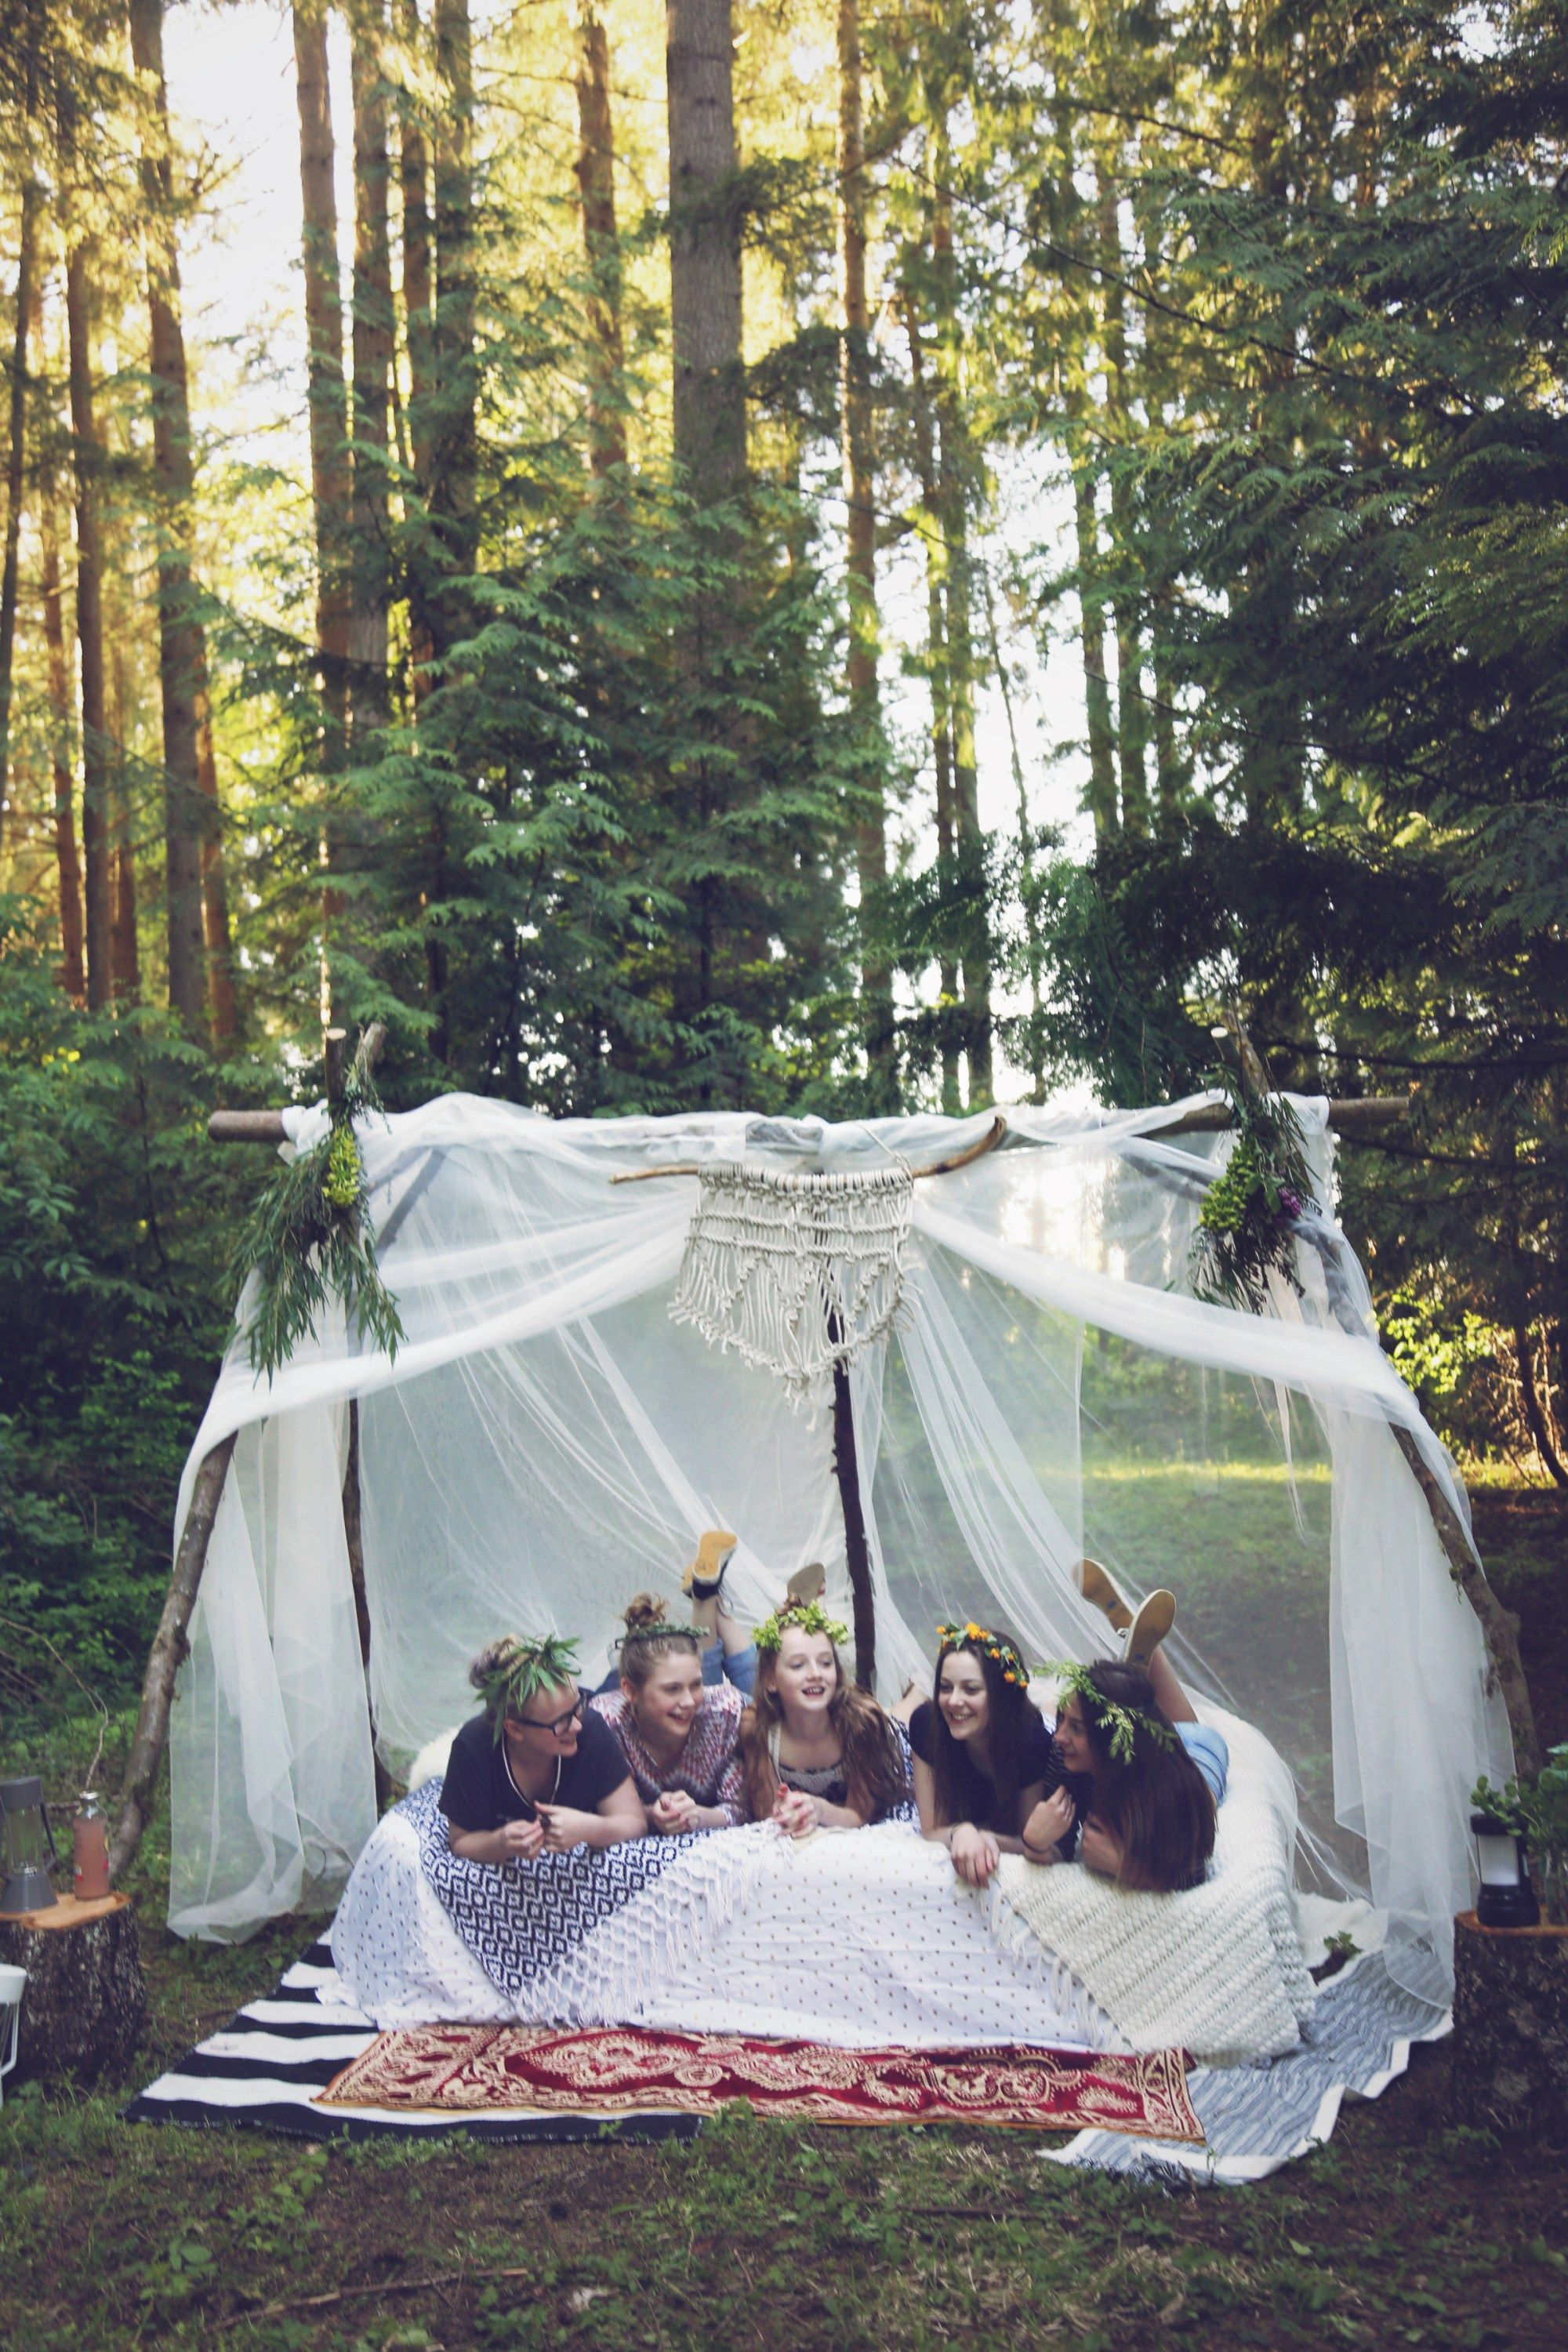 How to Throw a Festival Chic Boho Camping Party! Camping